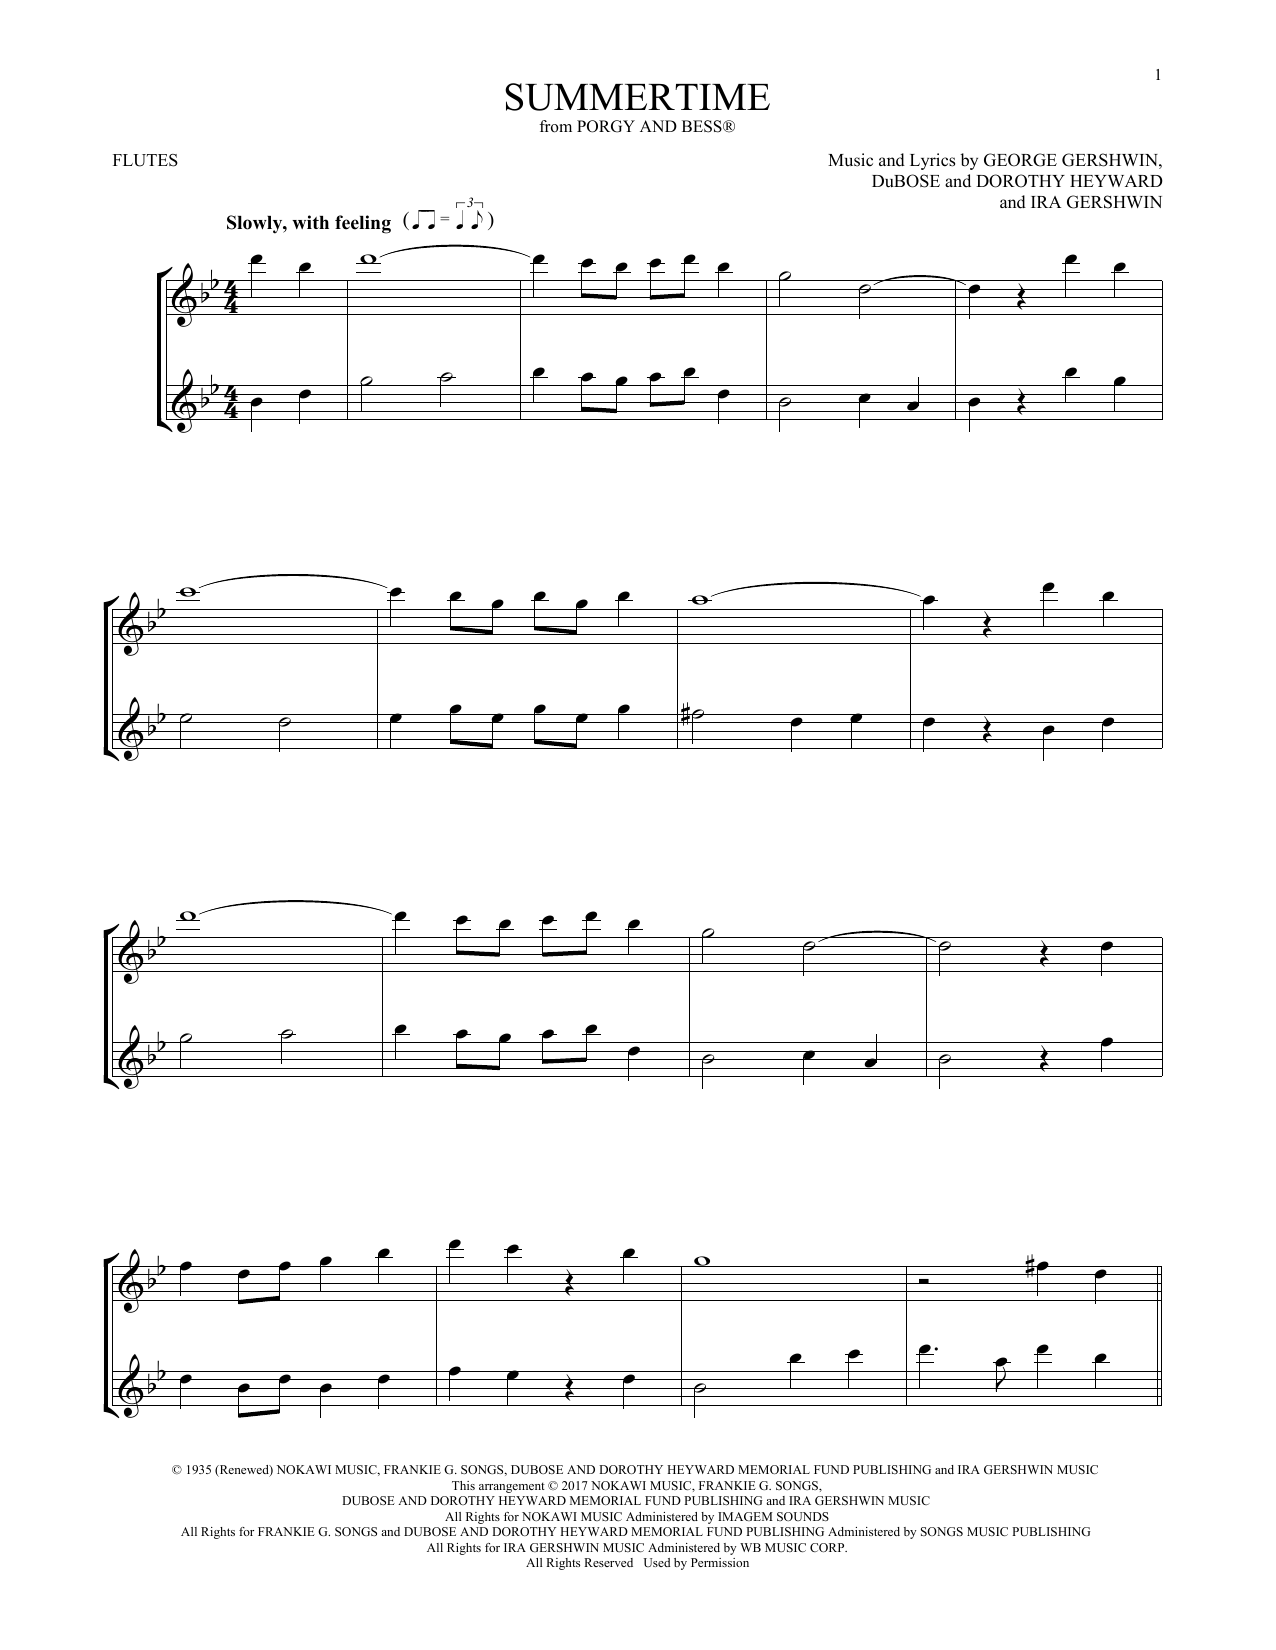 George Gershwin Summertime (from Porgy And Bess) sheet music notes and chords